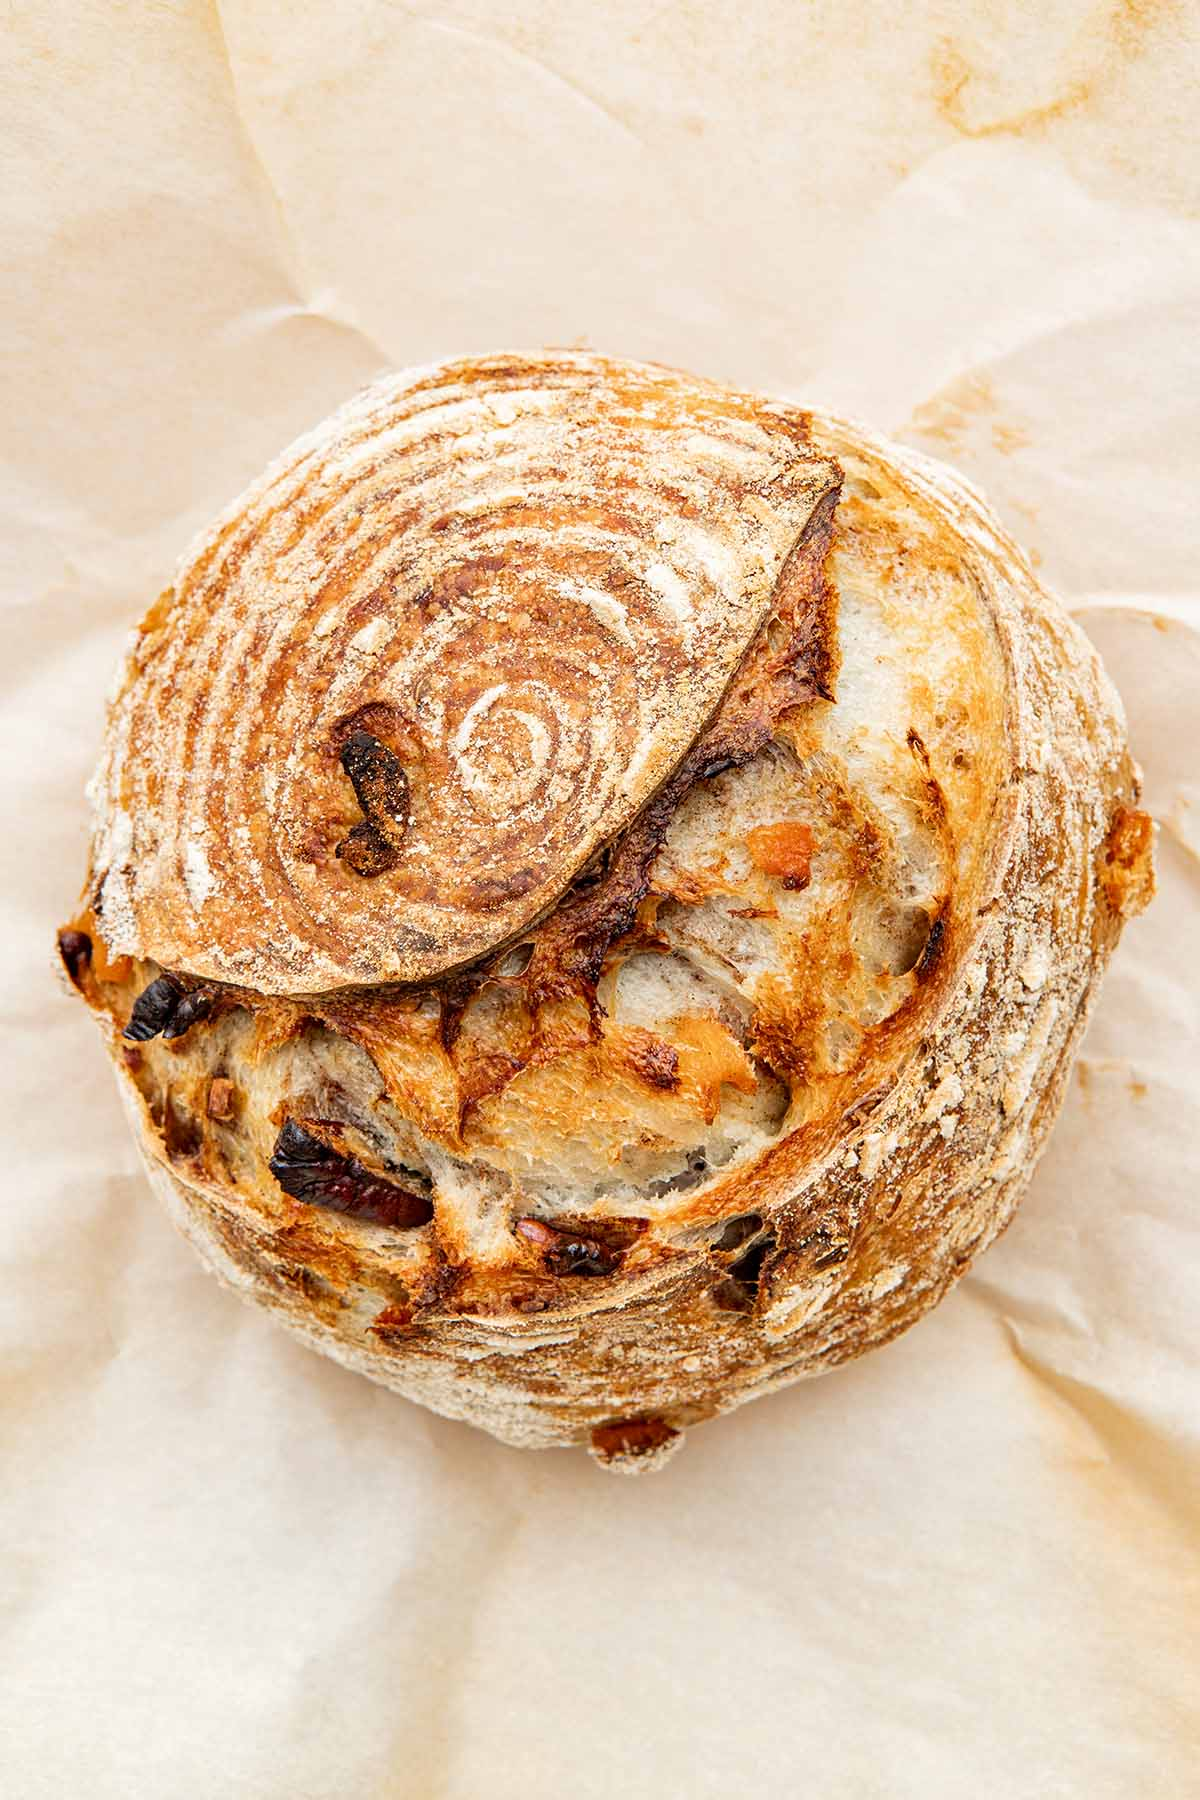 Close up of a loaf of sourdough bread on parchment paper.